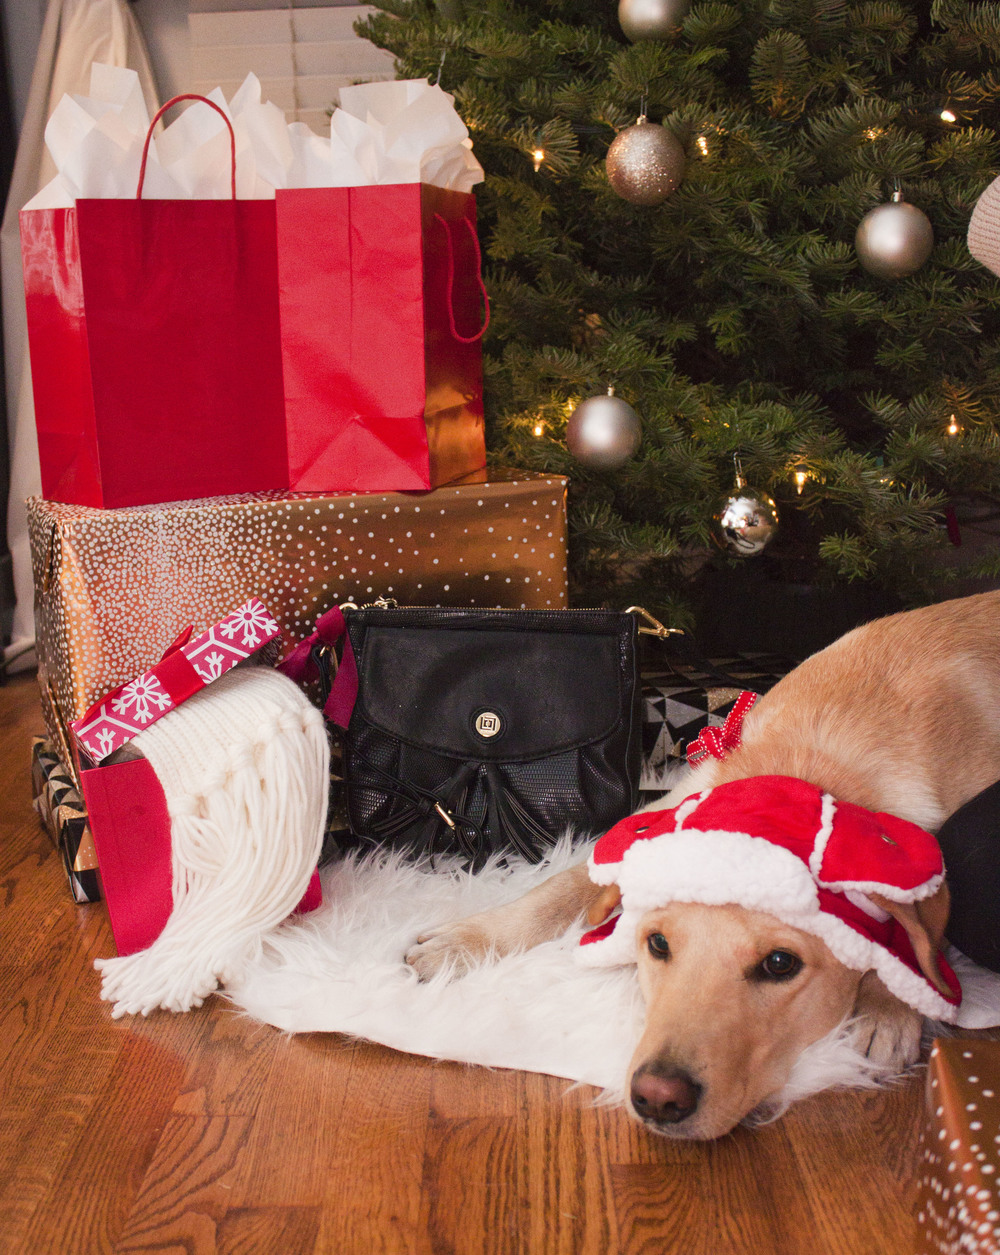 The perfect gift for under the tree: The Liz Claiborne Chelsea crossbody bag